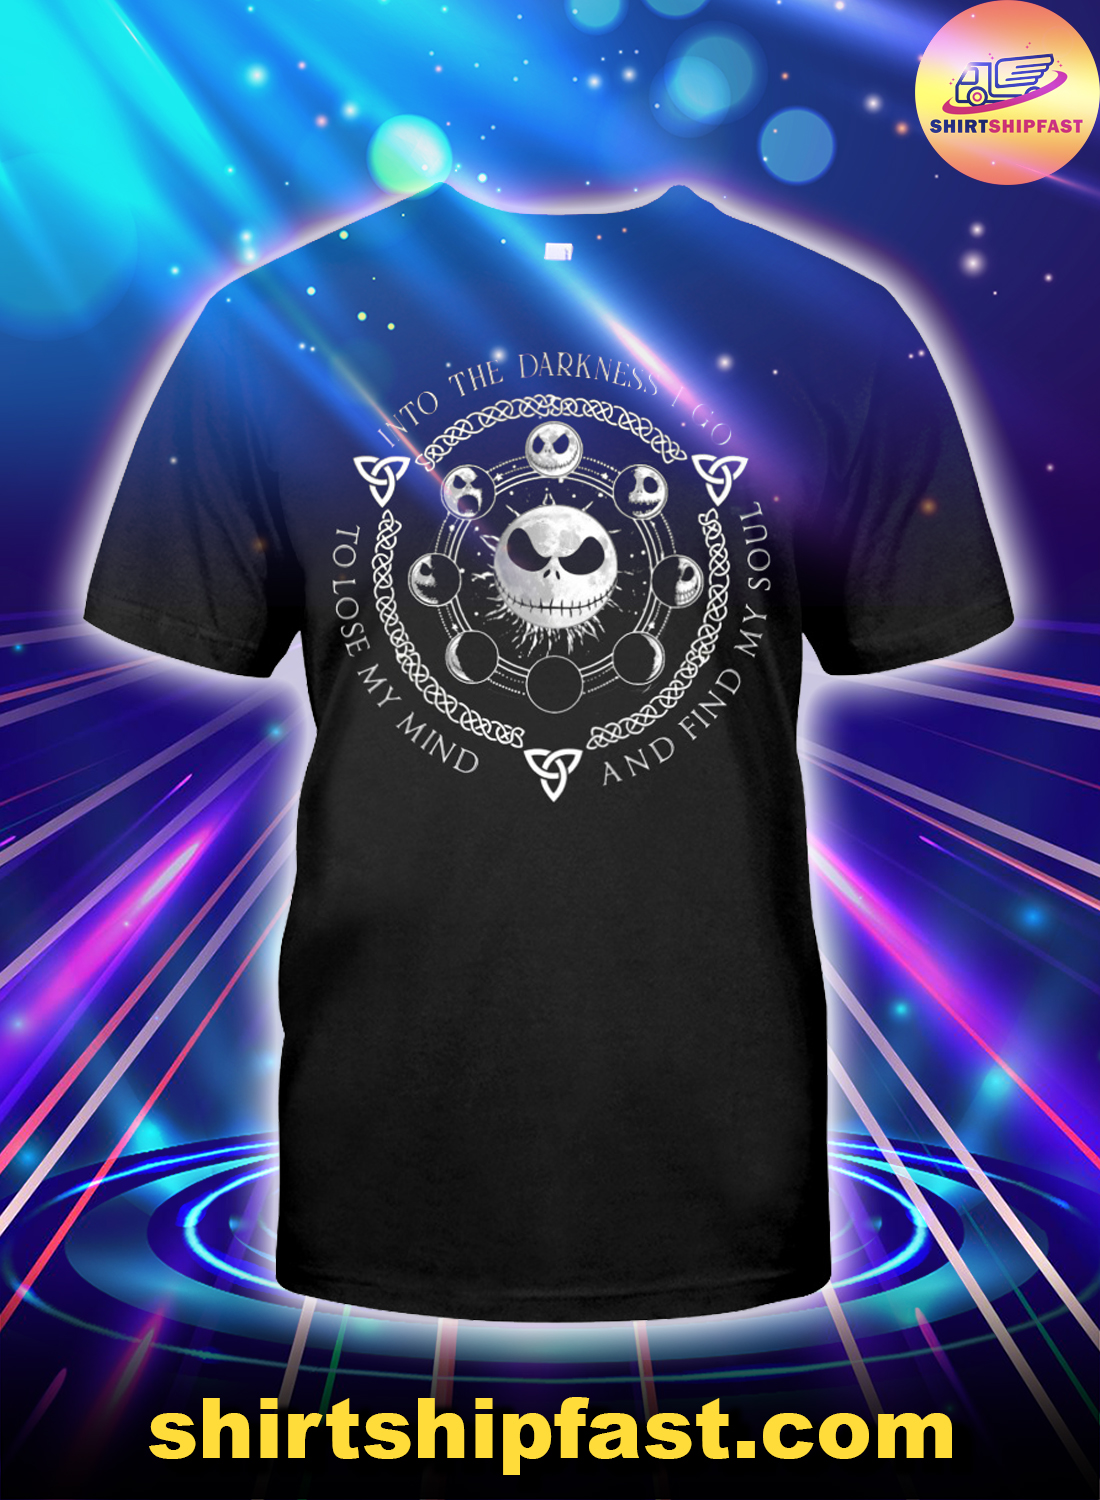 Jack Skellington Into the darkness I go to lose my mind and find my soul shirt